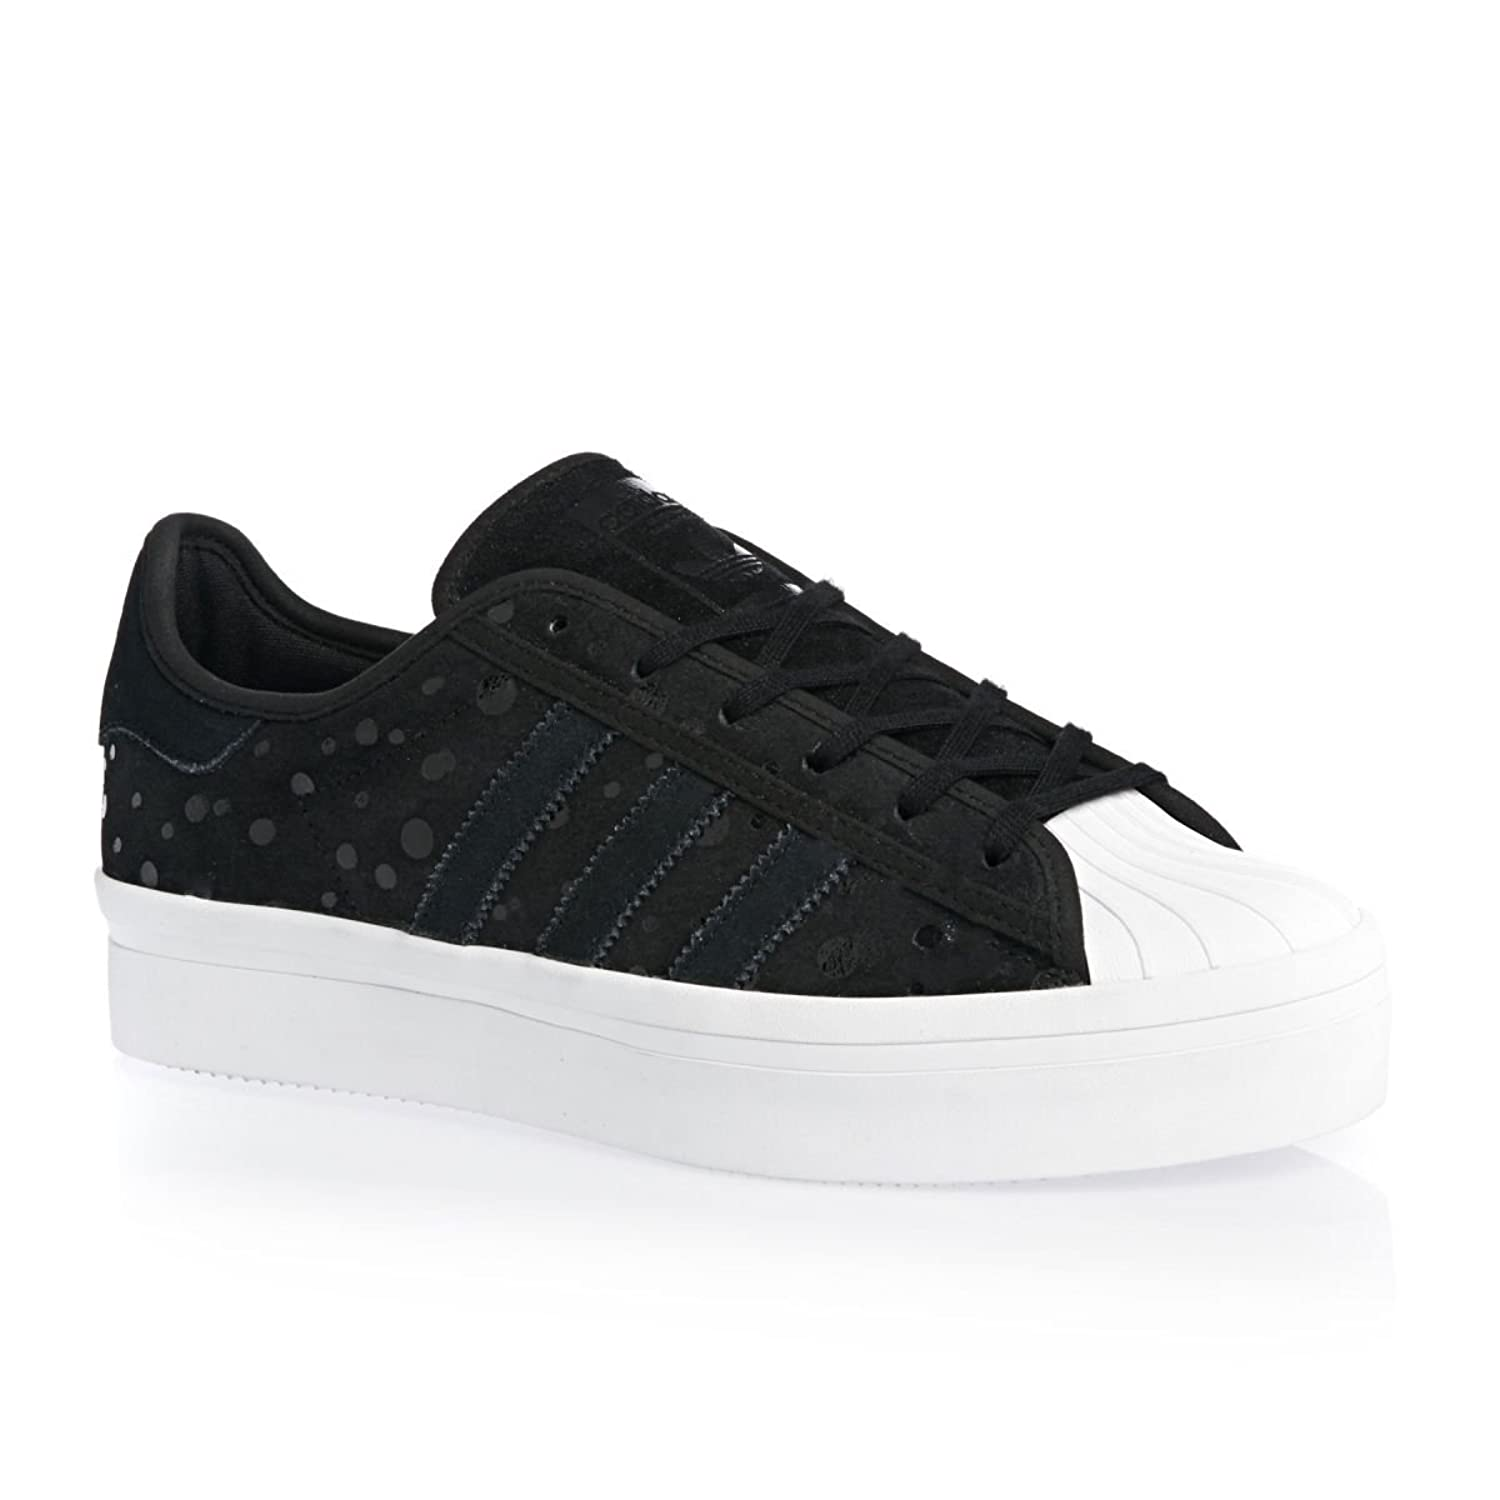 adidas originals superstar uomo caffe